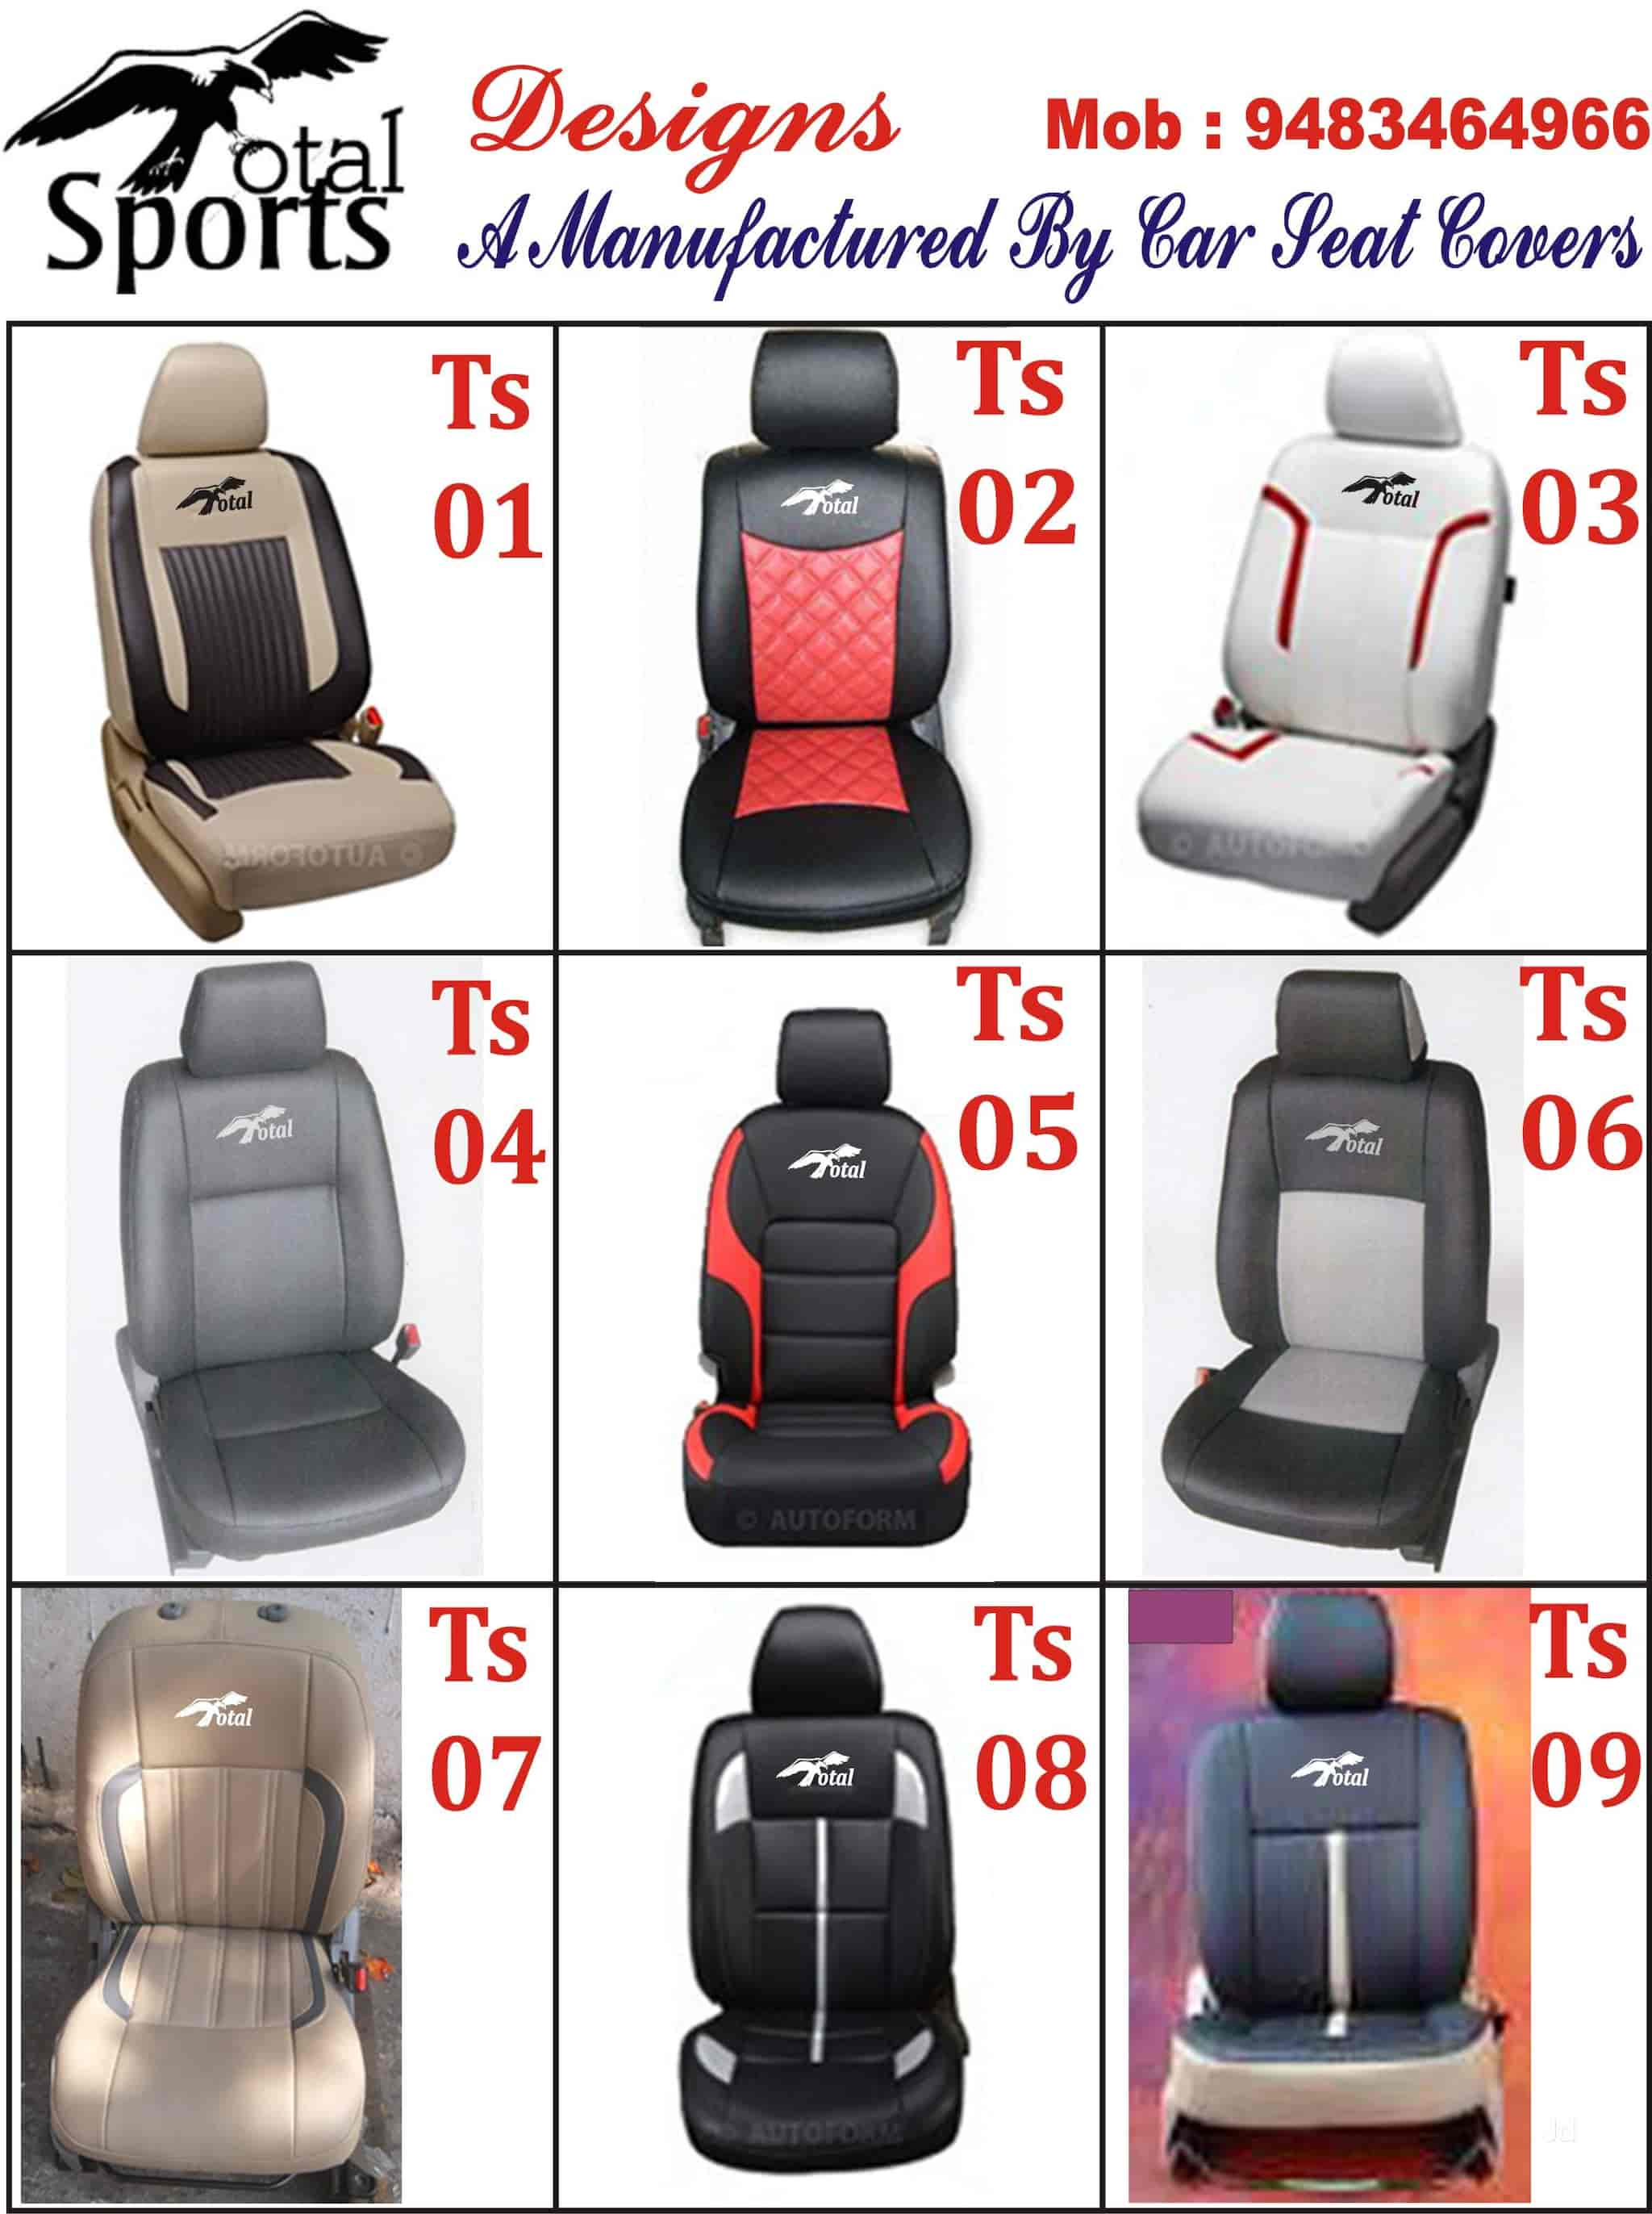 Total Sports Car Seat Covers Photos Hosur Road Bangalore Pictures